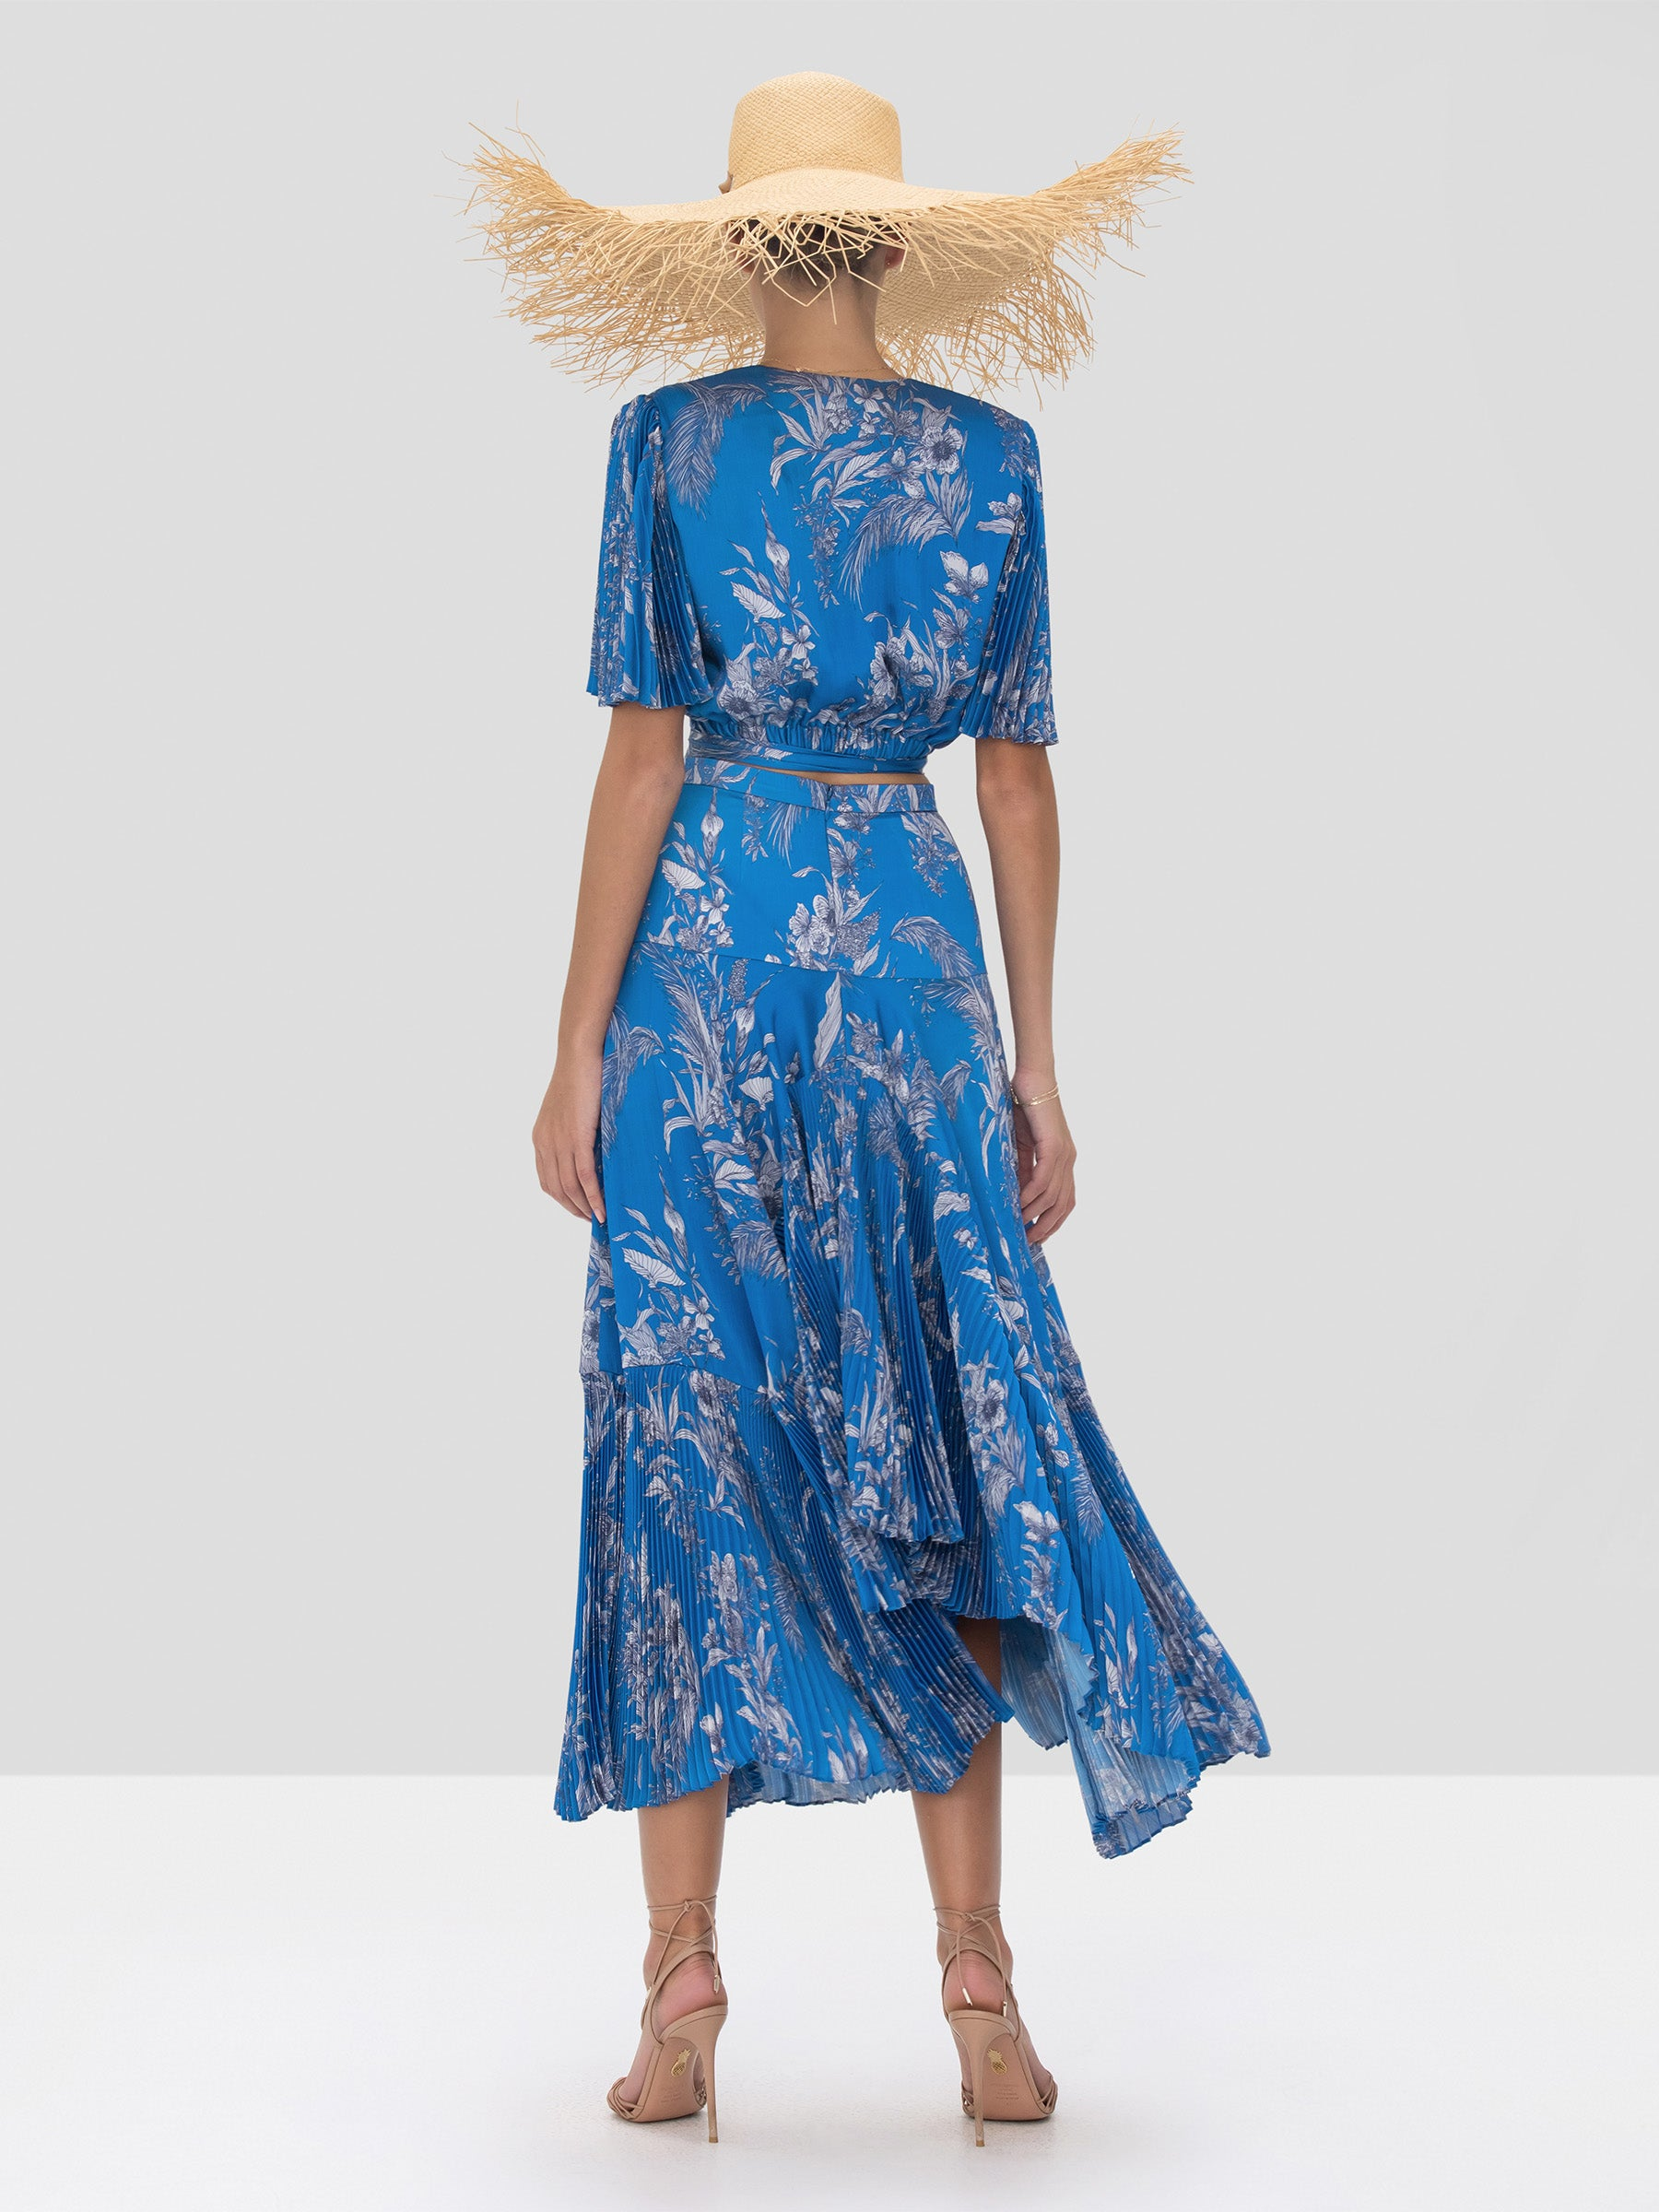 Alexis Rylie Top and Tarou Skirt in Blue Palm Spring Summer 2020 Collection - Rear View